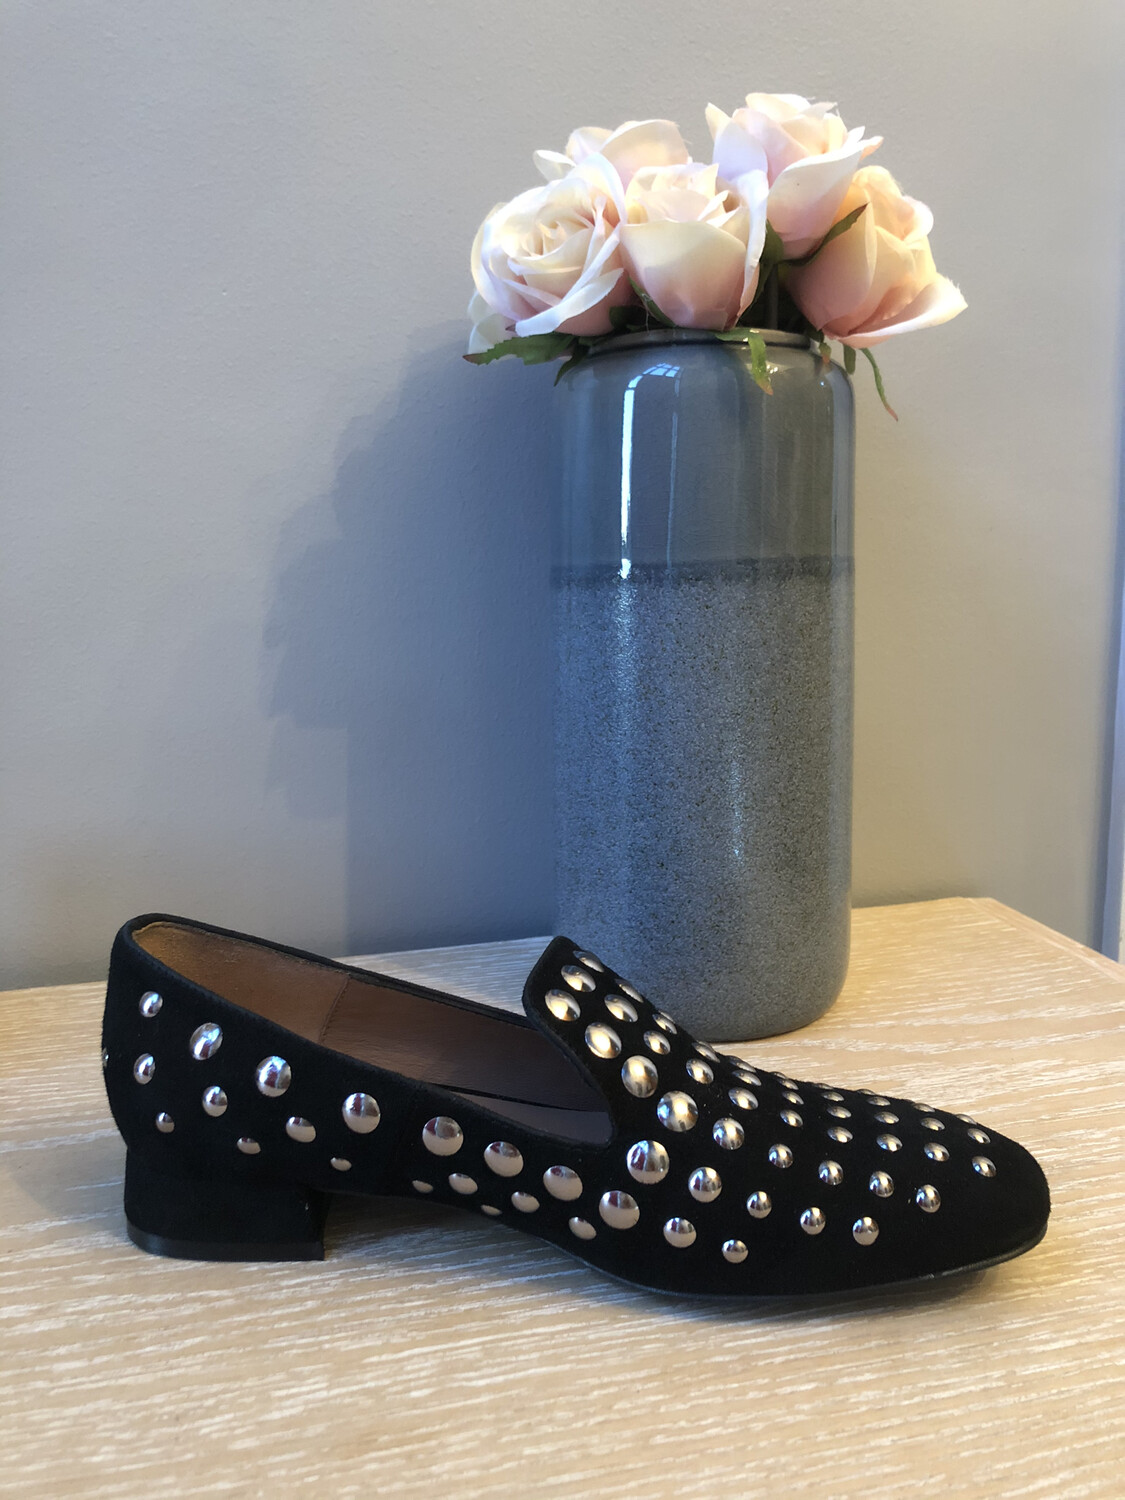 Marian - 8704 Black Suede Loafer With Stud Detail